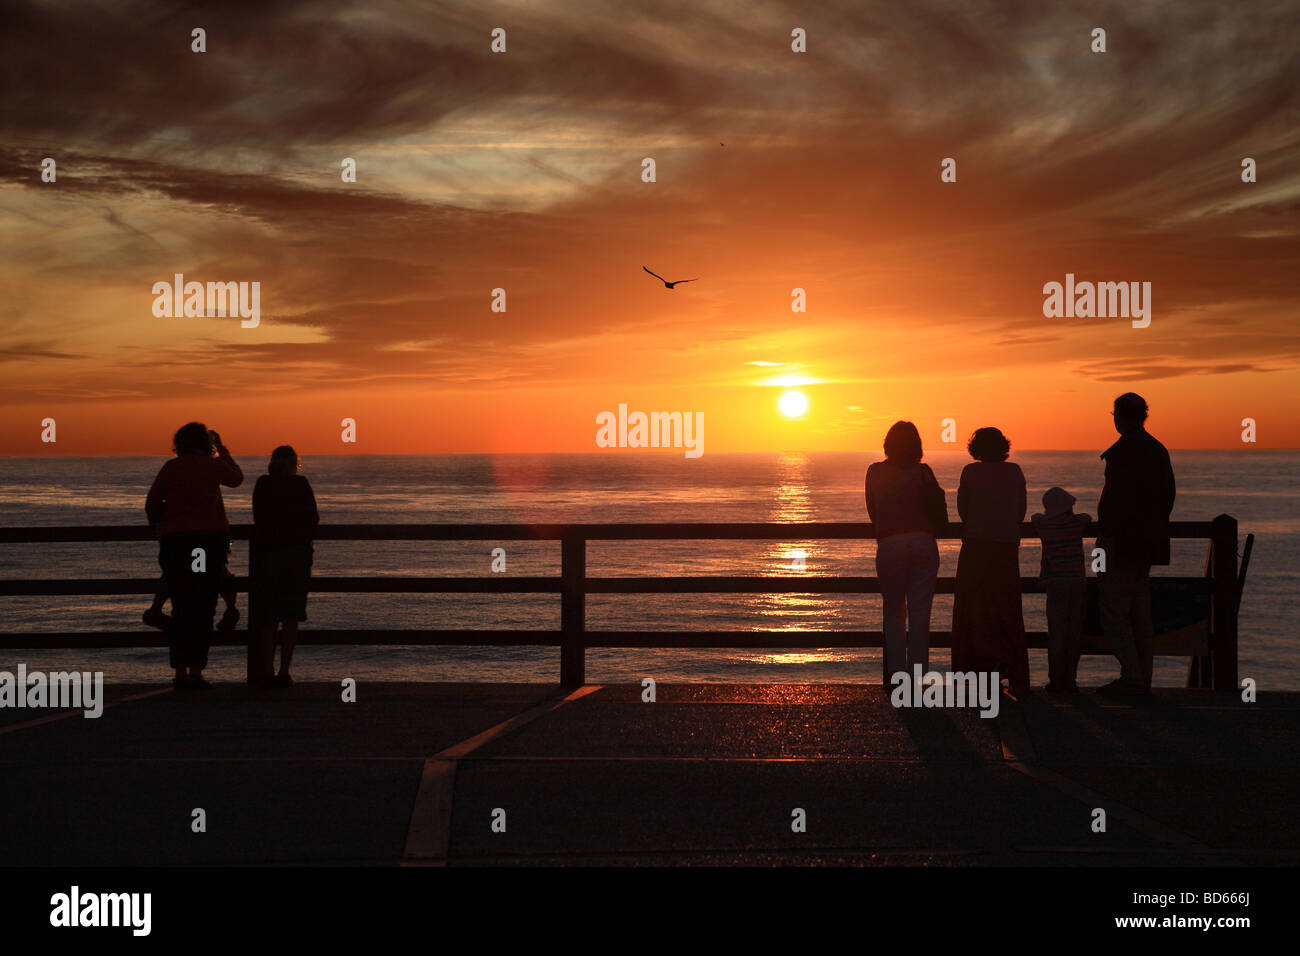 Six people watching the sunset at Etretat in Normandy while a seagull flies above, France, Europe - Stock Image